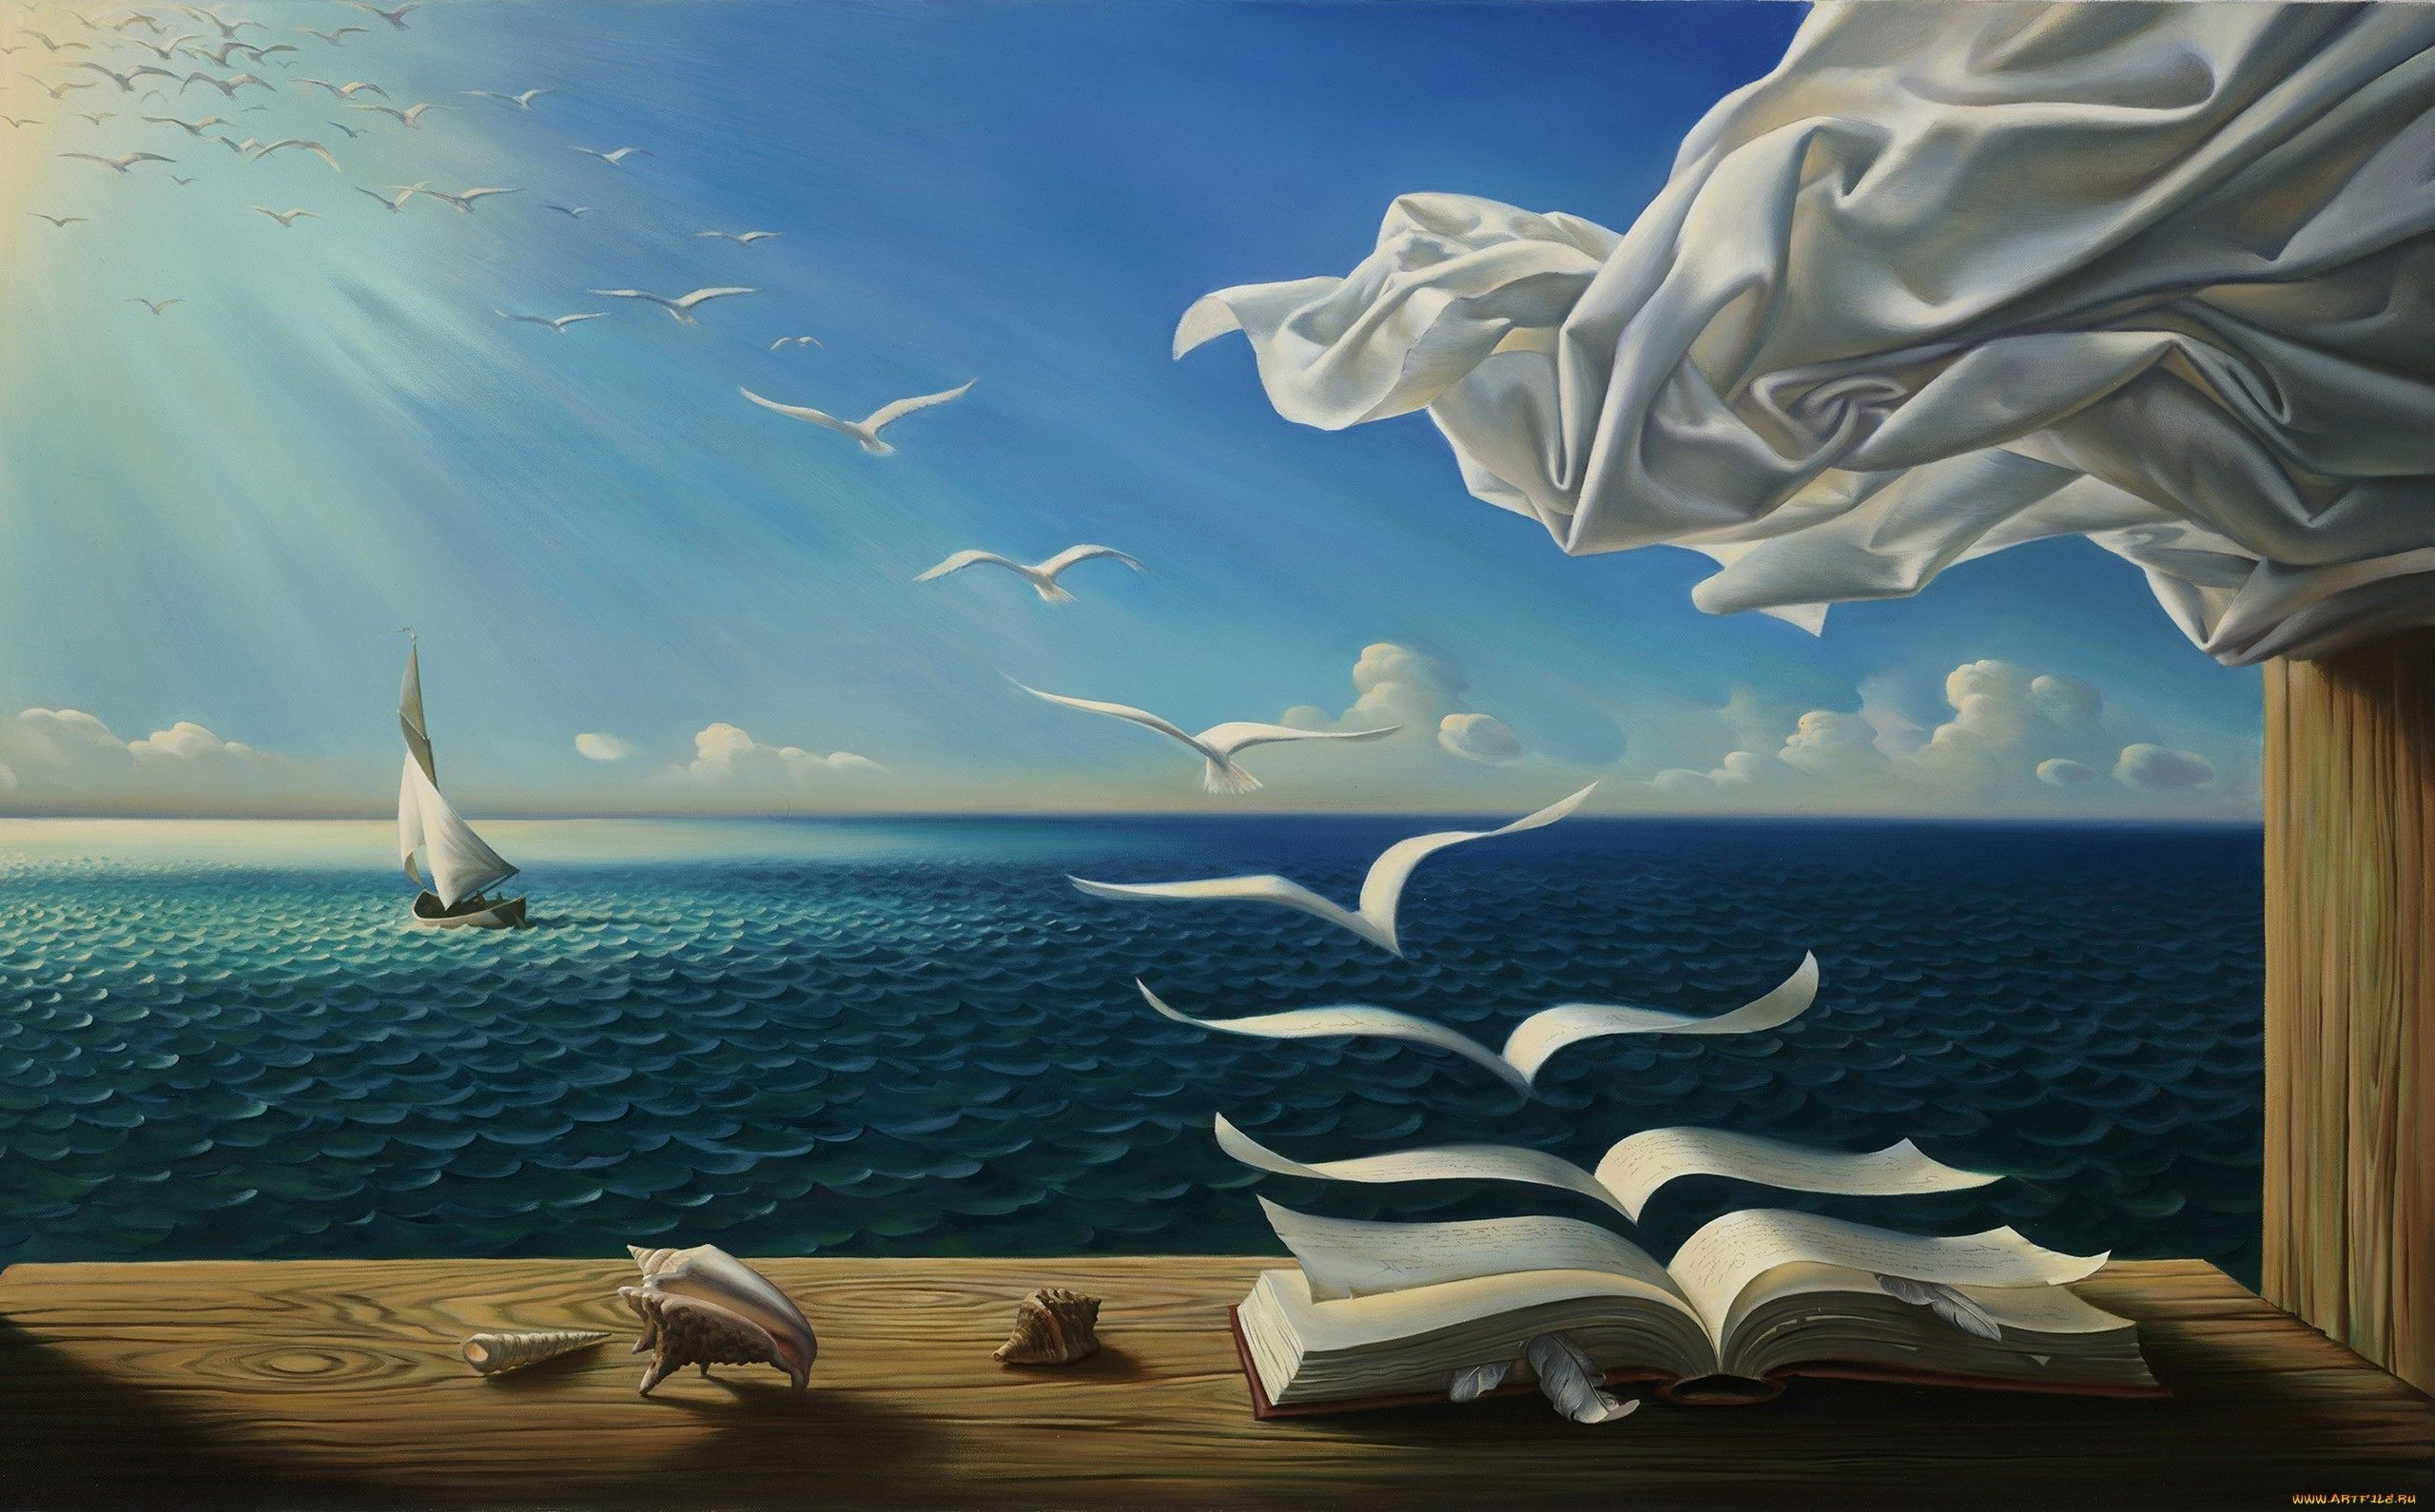 Sky Sea Books Birds Rob Gonsalves Wallpaper Murales Arte